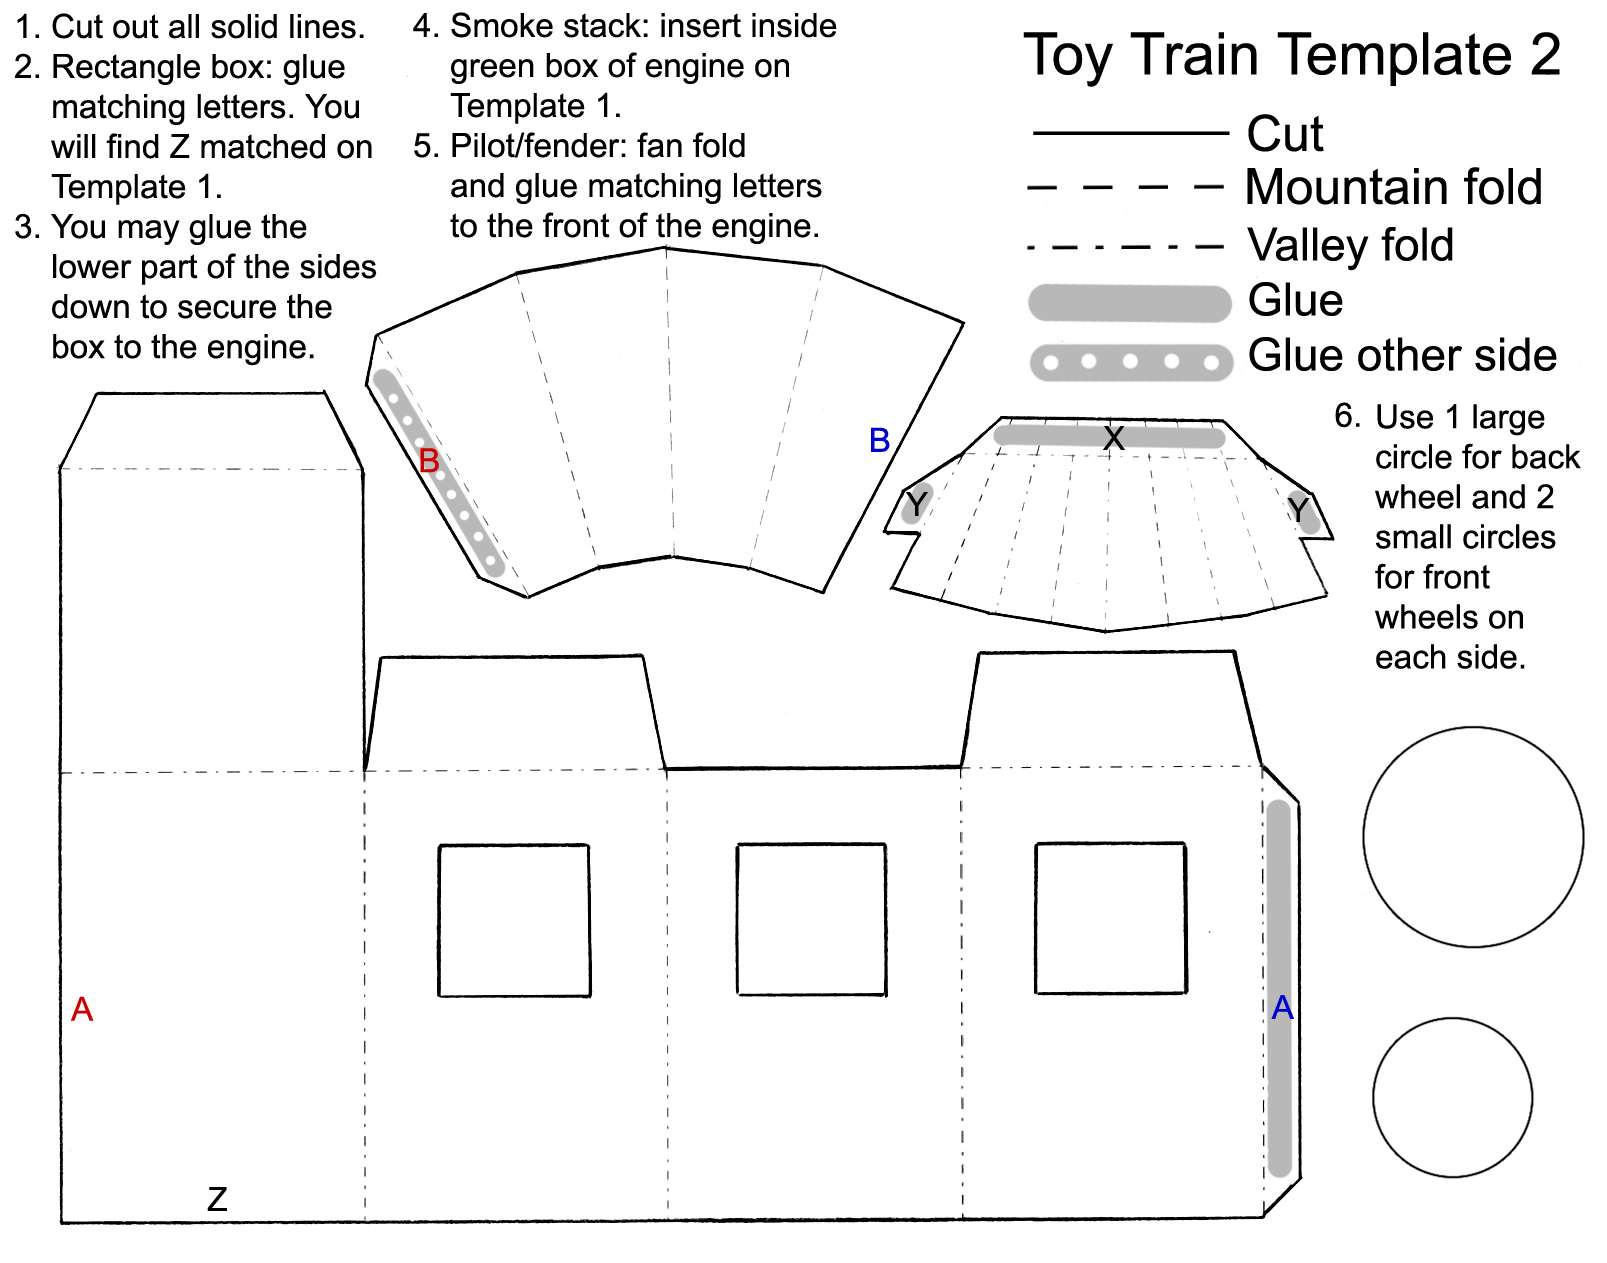 Toy Train Favor Template Part 2